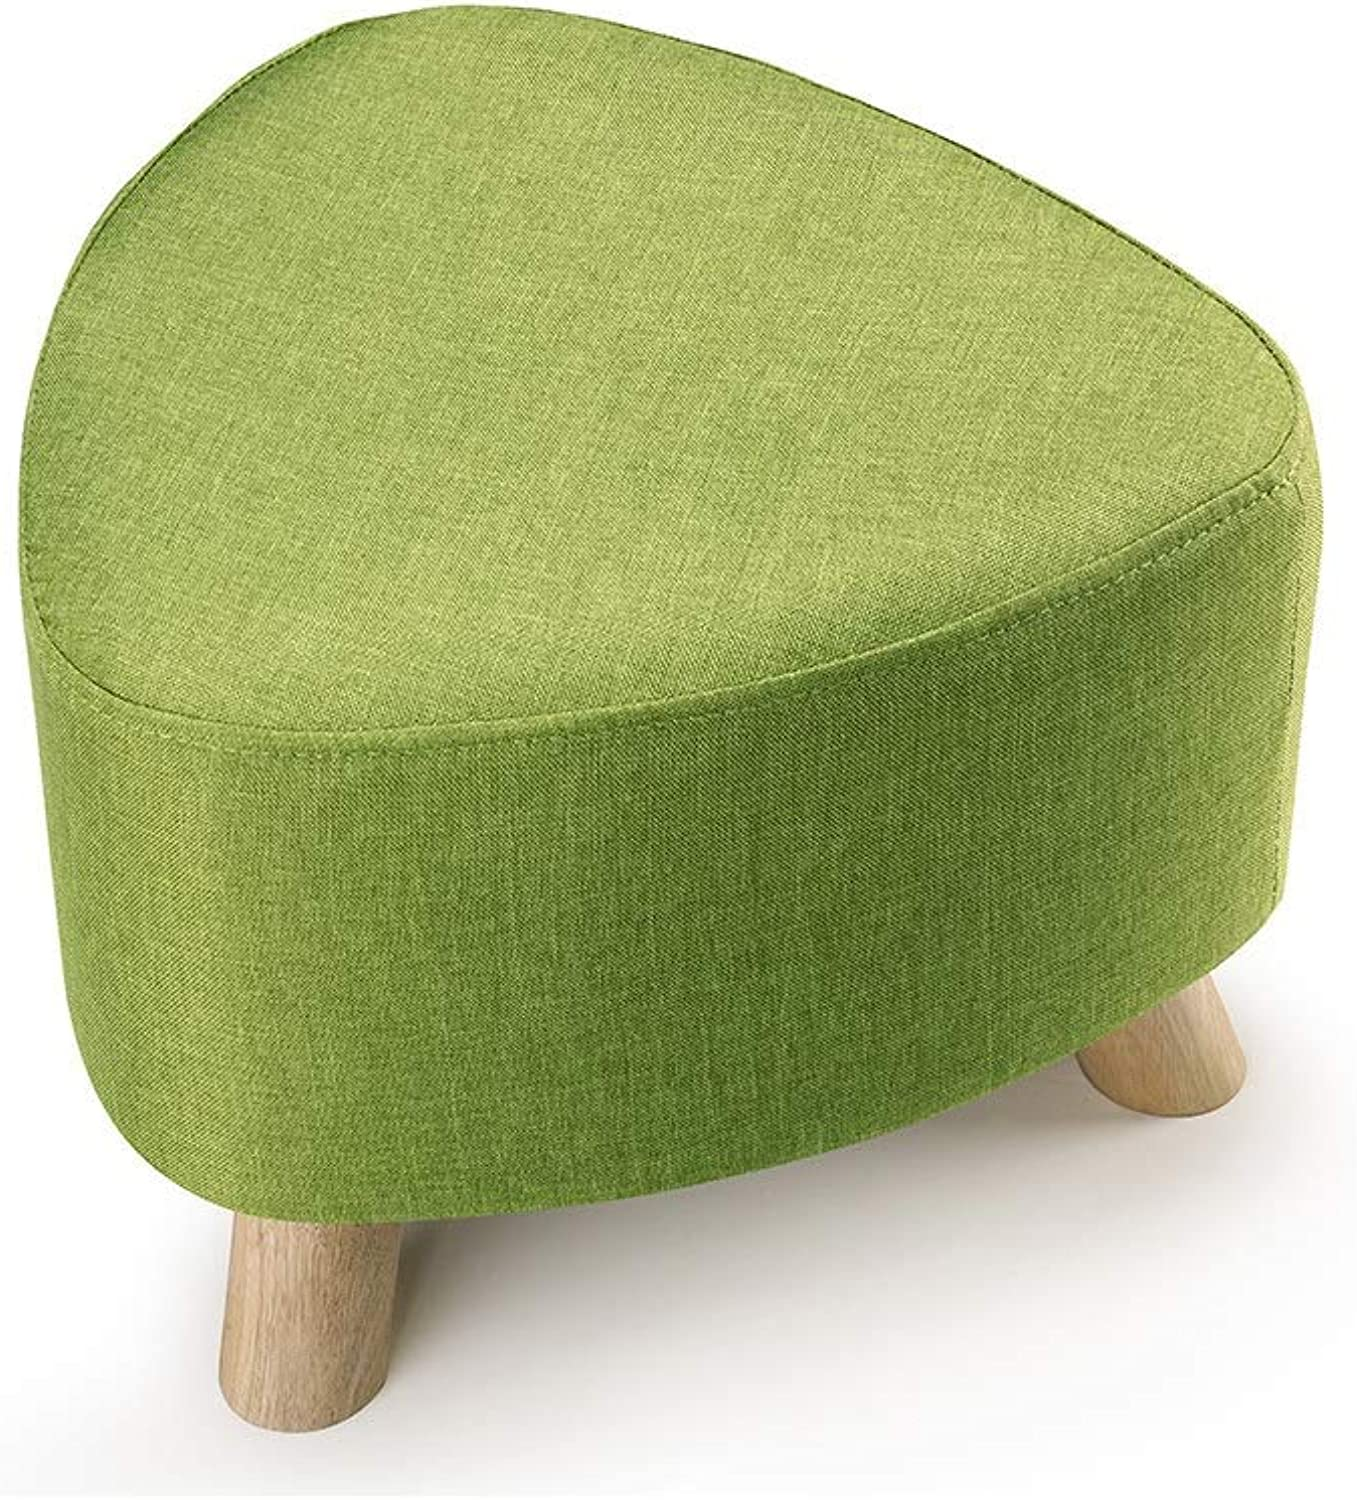 Footstool Upholstered Triangle Stool Chair Solid Wood Three-Legged Support Removable Grass Green Linen Cover Sofa Bench (color   Green)